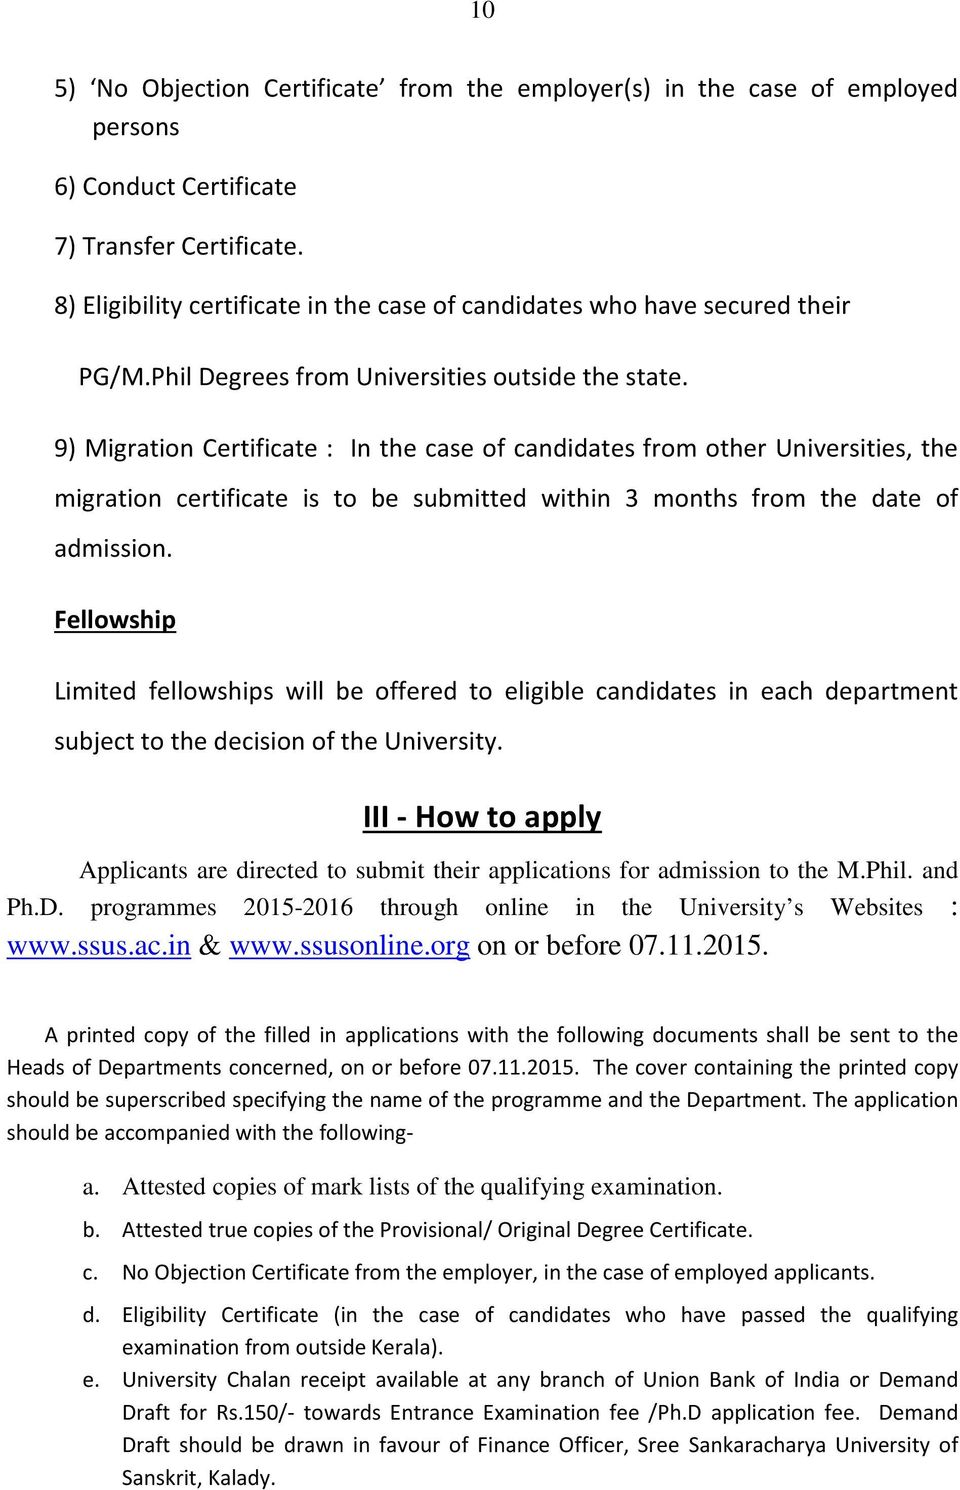 9) Migration Certificate : In the case of candidates from other Universities, the migration certificate is to be submitted within 3 months from the date of admission.